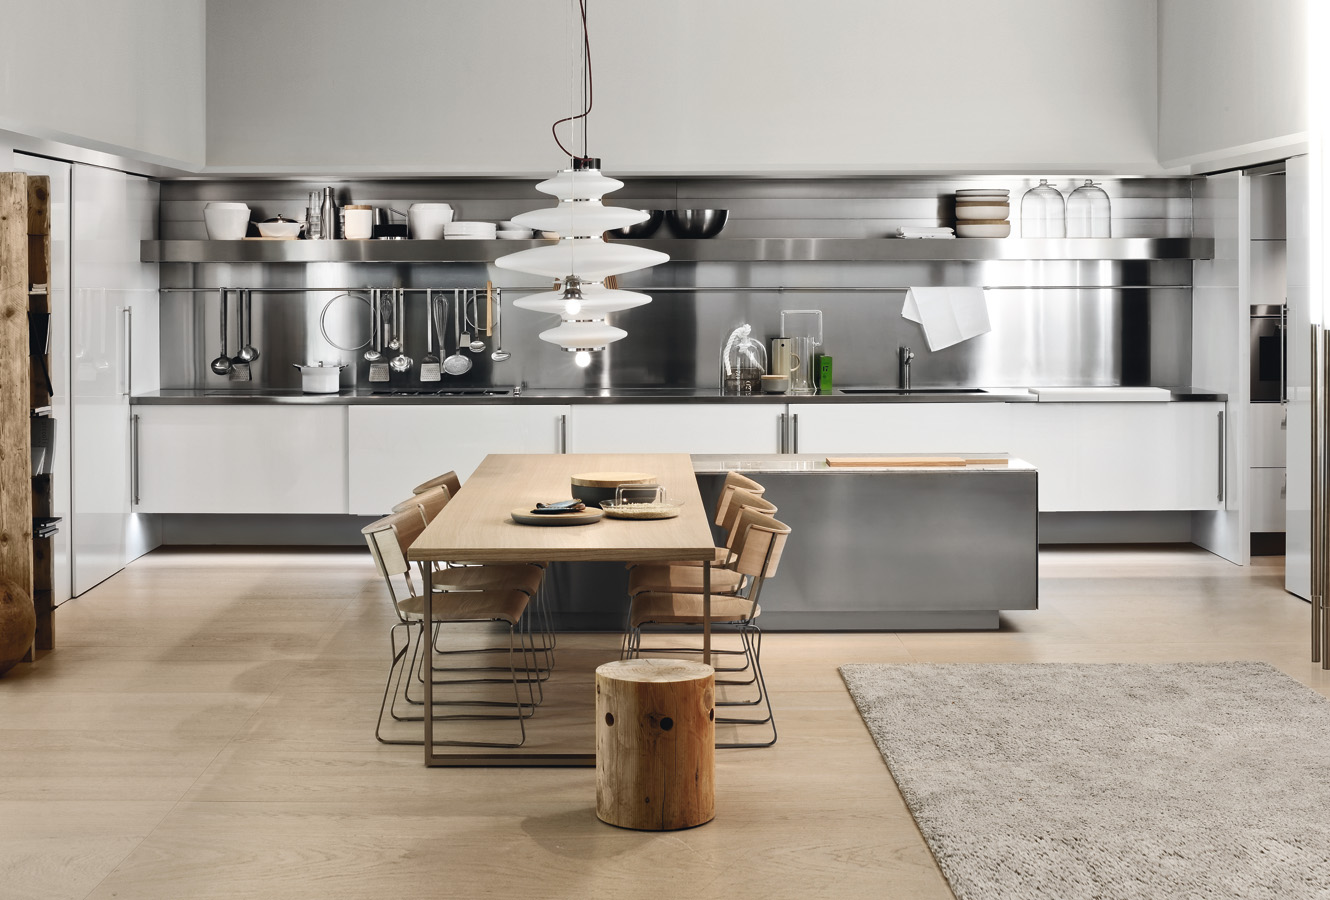 Simple Kitchen Design For Small Space: Simple Kitchen With Aluminium Furniture Design For Small